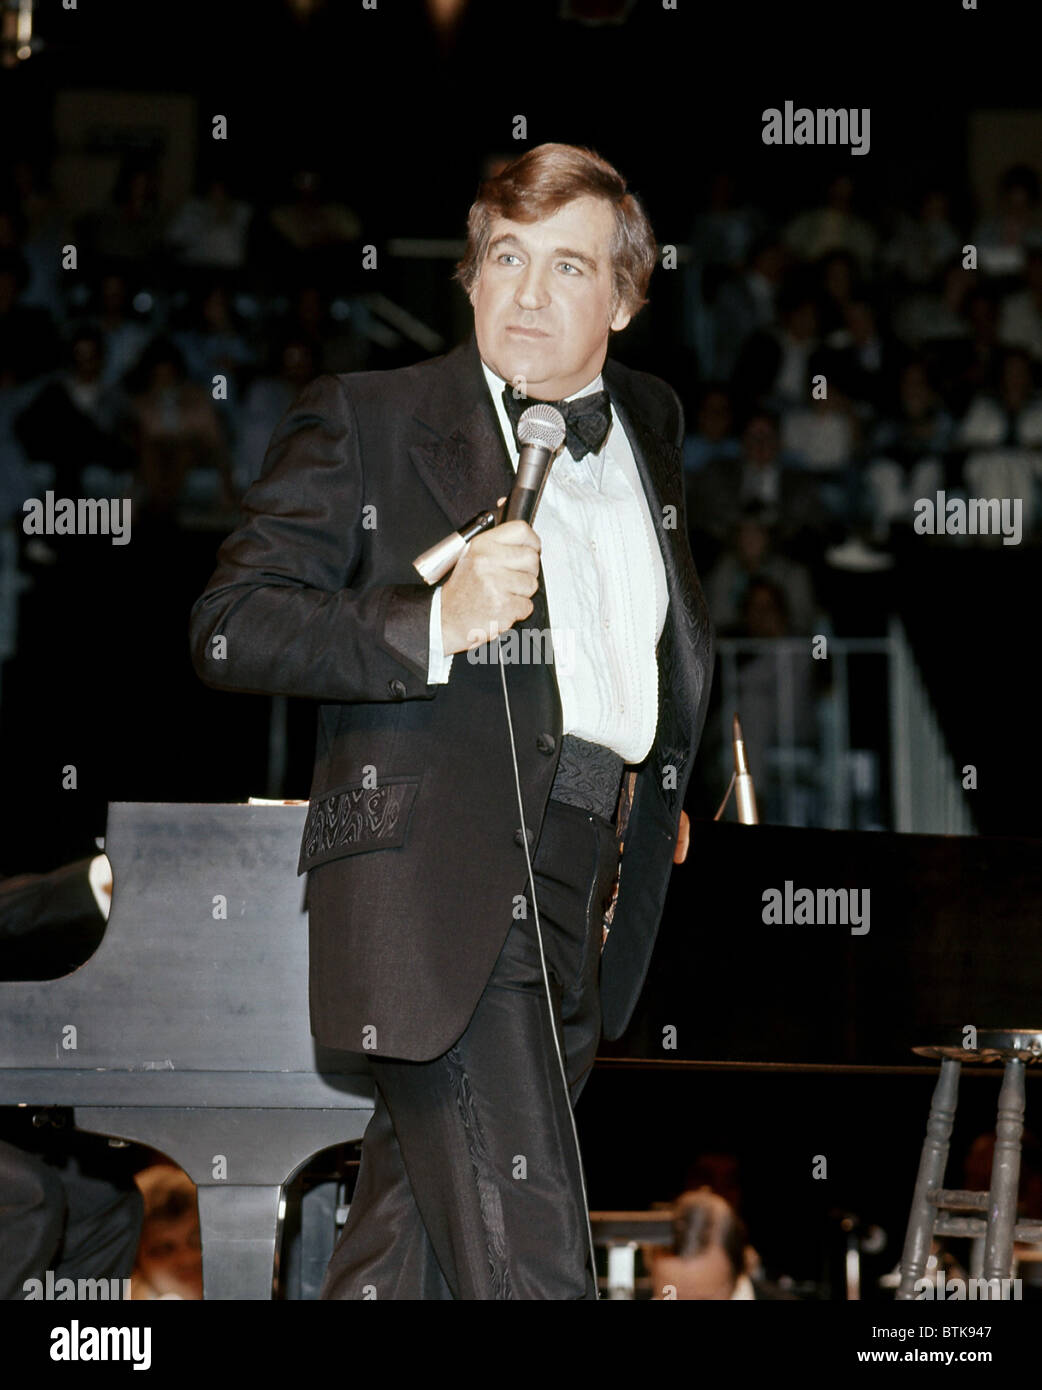 Shecky Greene, 1976, Millrun Playhouse Theater in the Round, Niles, Illinois. - Stock Image